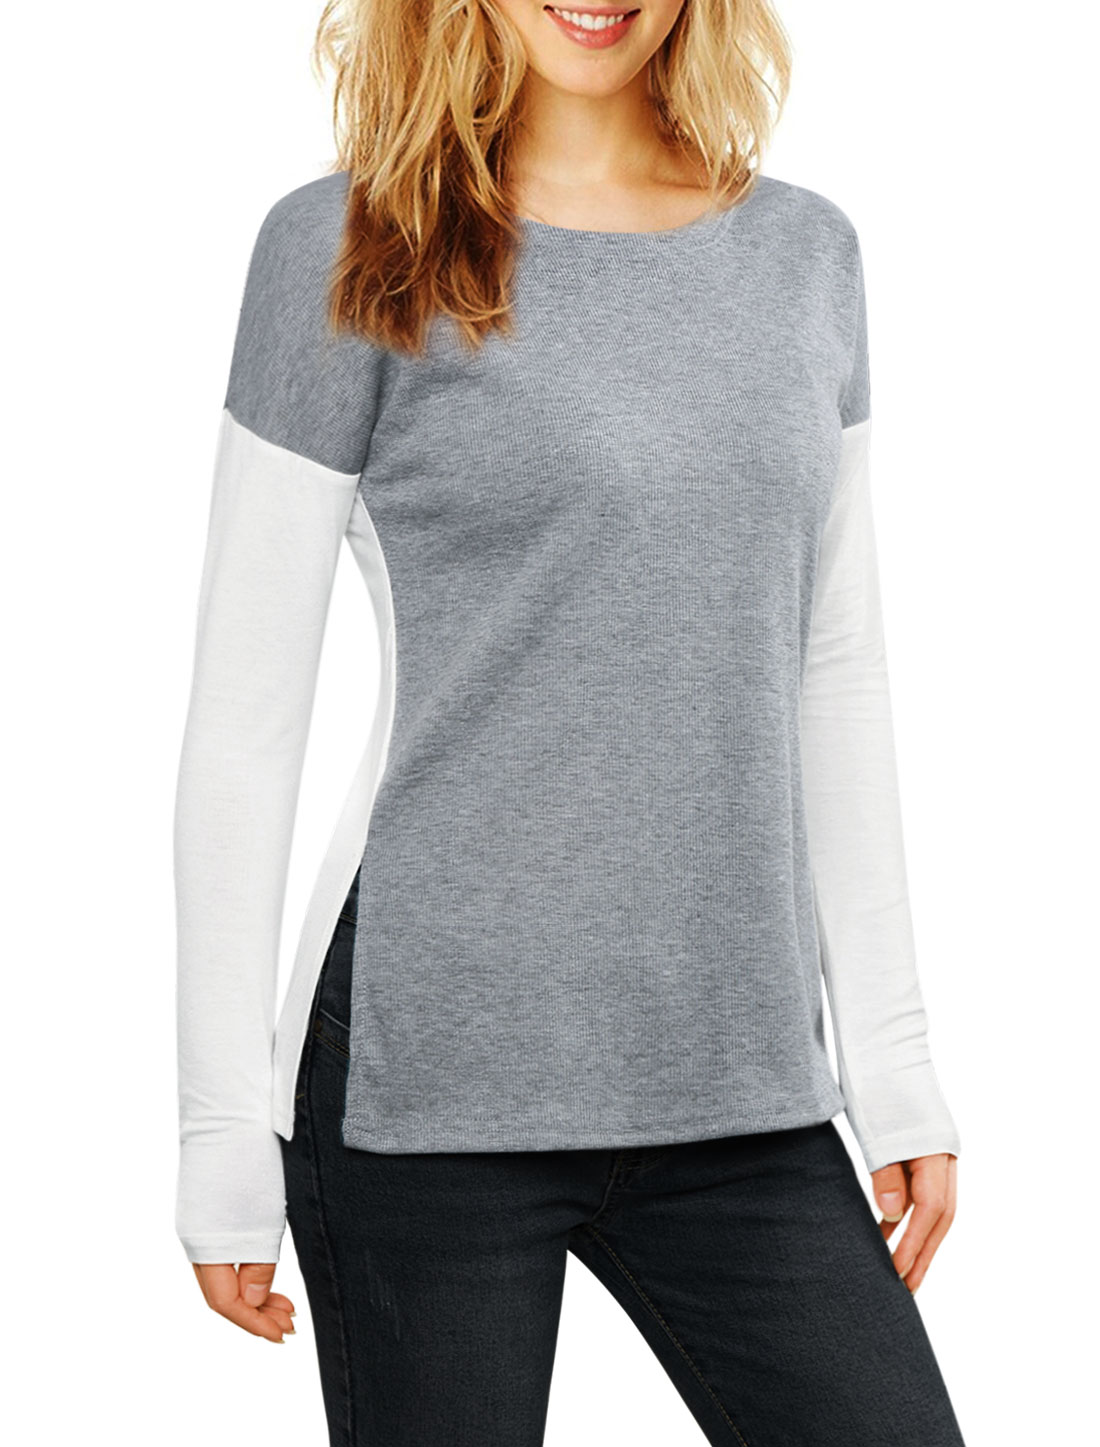 Women Color Block Side-Slit Paneled Slim Fit Ribbed Top Gray XS